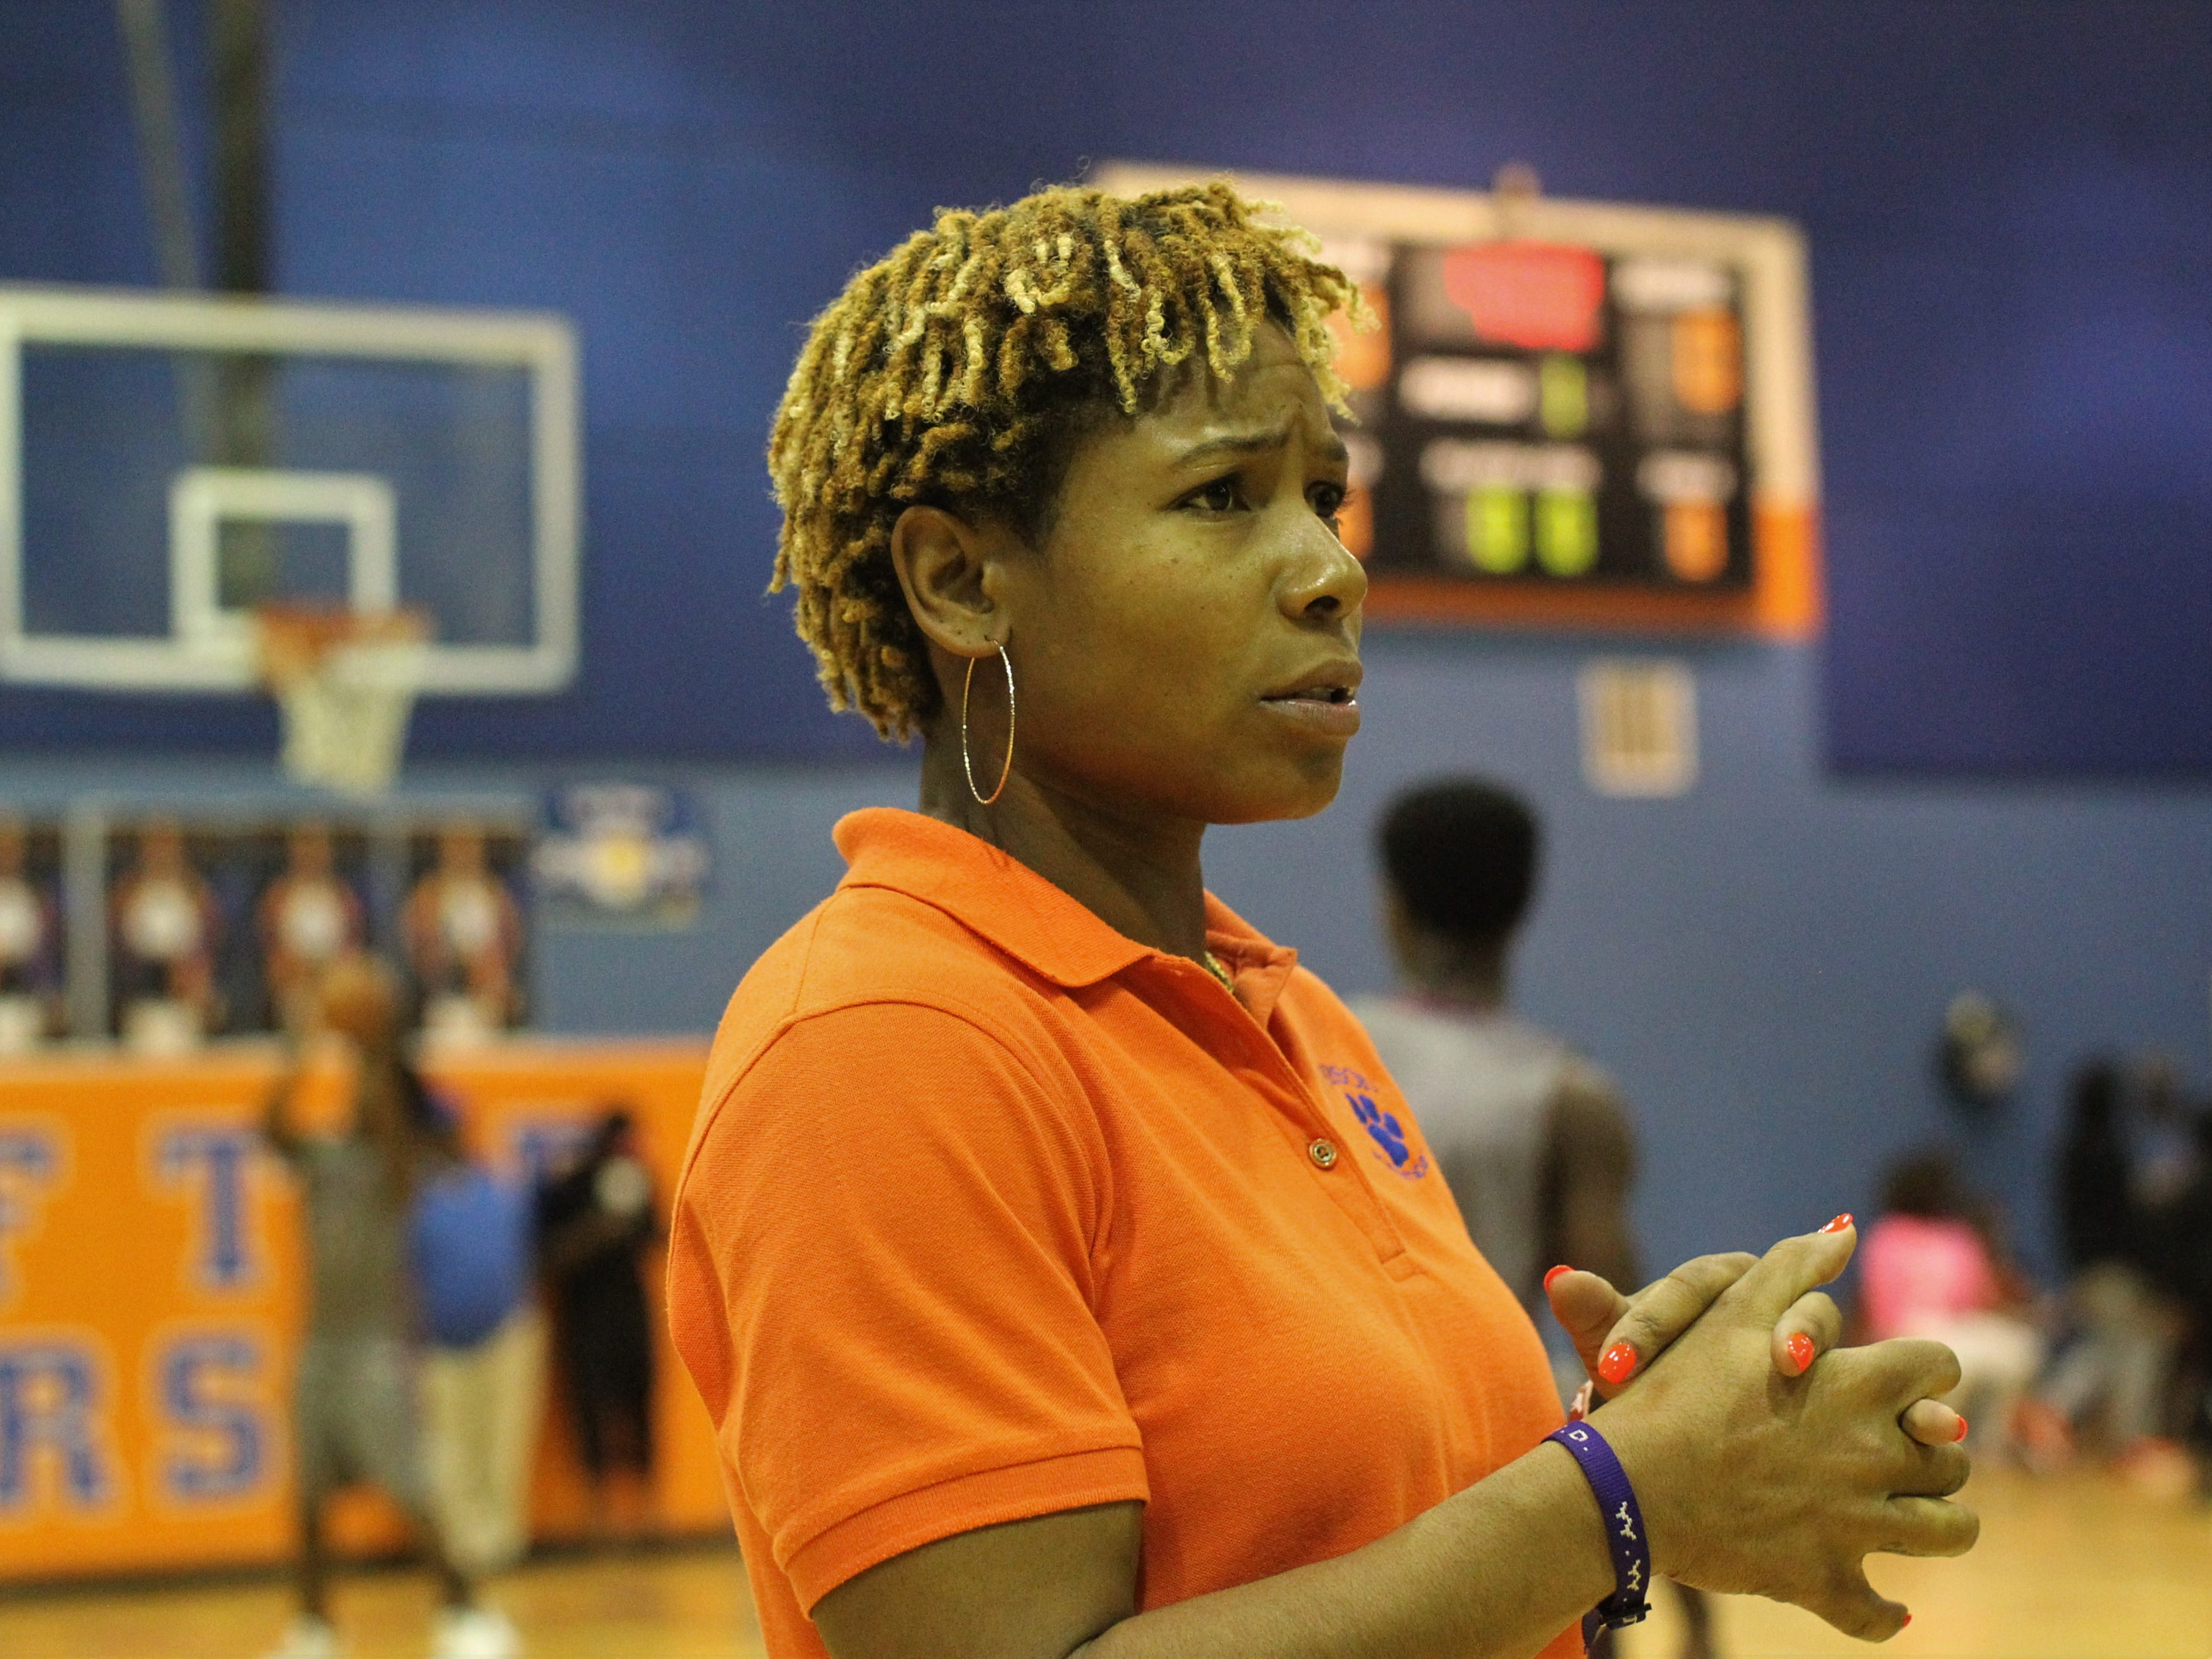 Jefferson County boys basketball coach Q'Vaunda Curry watches her team warm up prior to Madison County winning 70-44 at Jefferson County on Jan. 3, 2019.